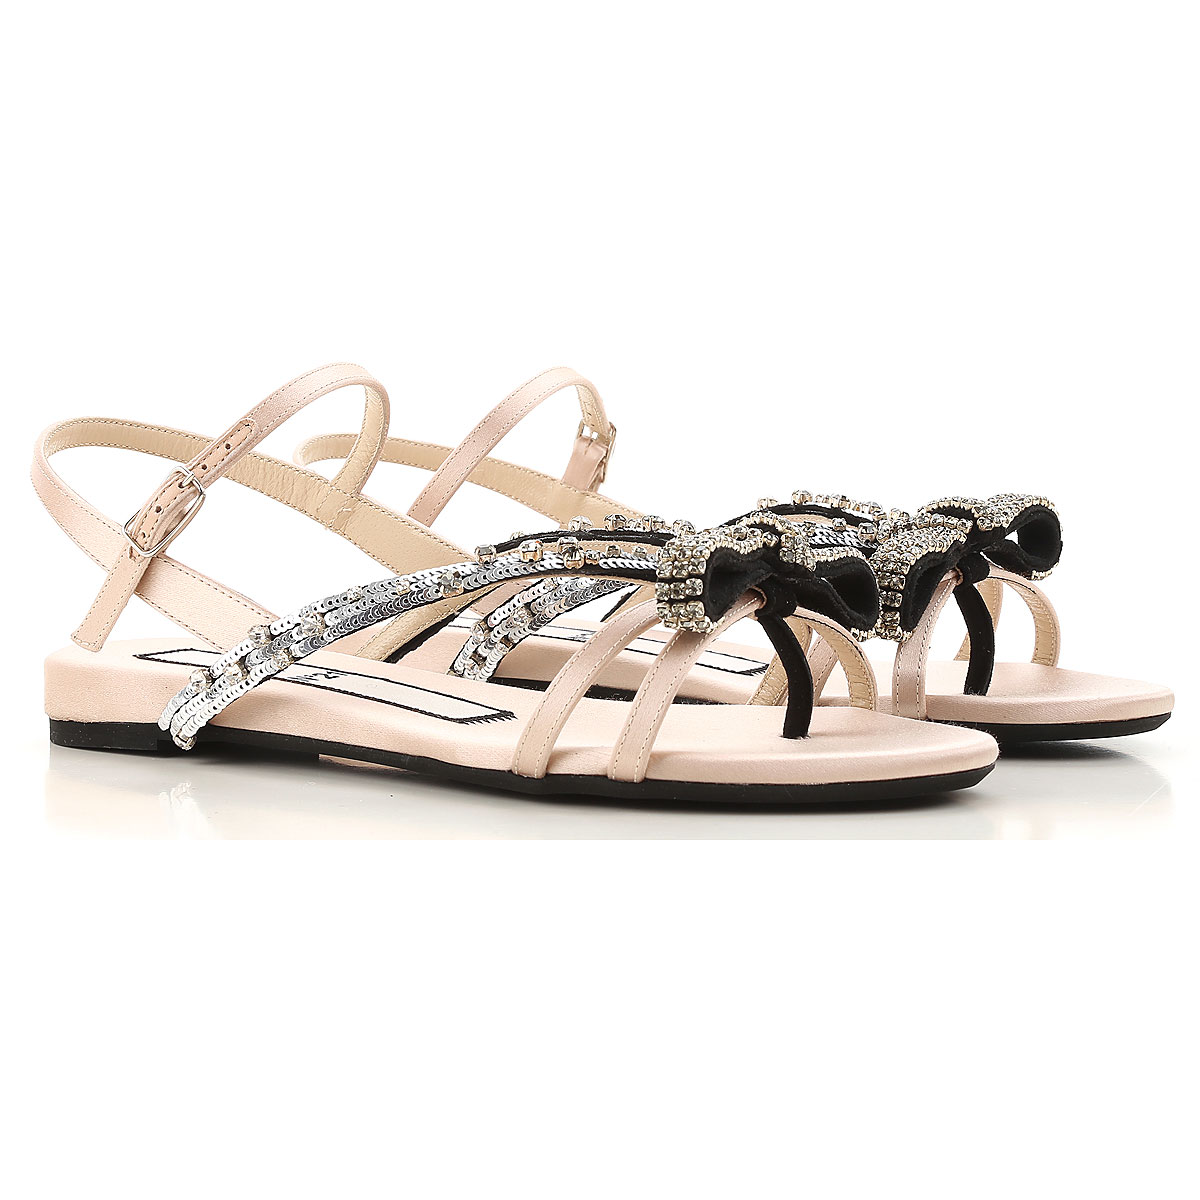 NO 21 Sandals for Women in Outlet Powder USA - GOOFASH